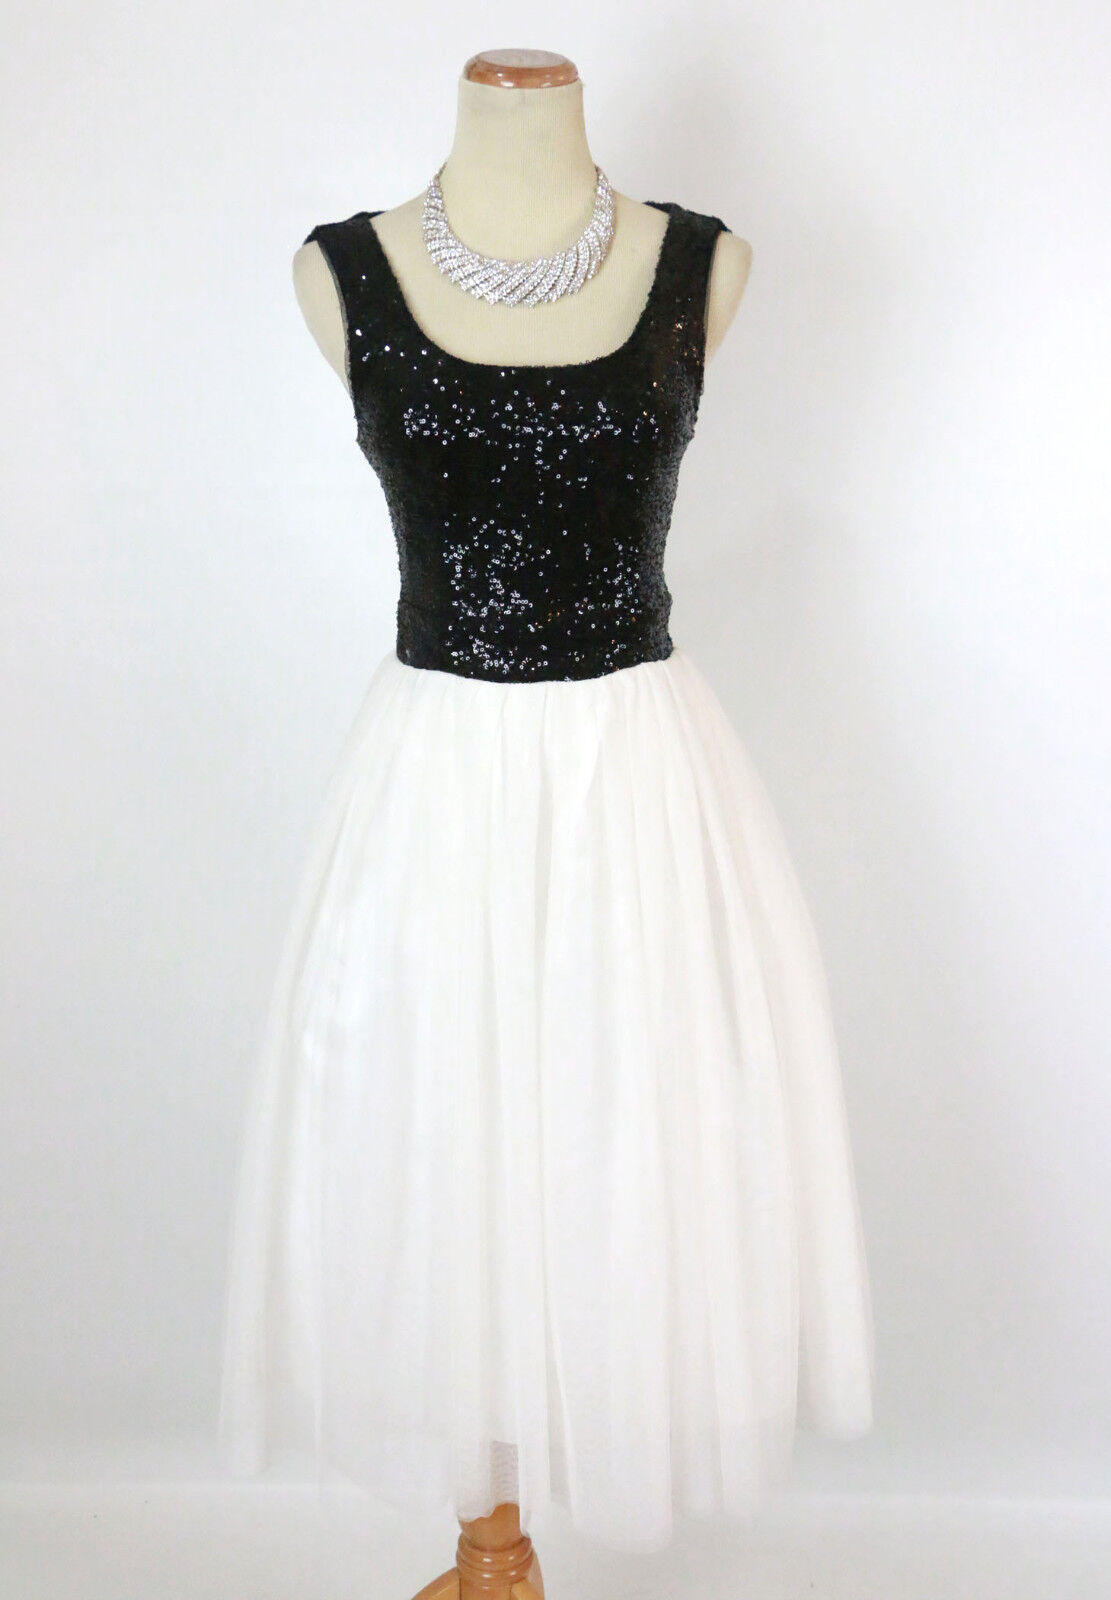 NEW Windsor  schwarz   Ivory Sequins Strapless Evening Cocktail Dress Größe 5